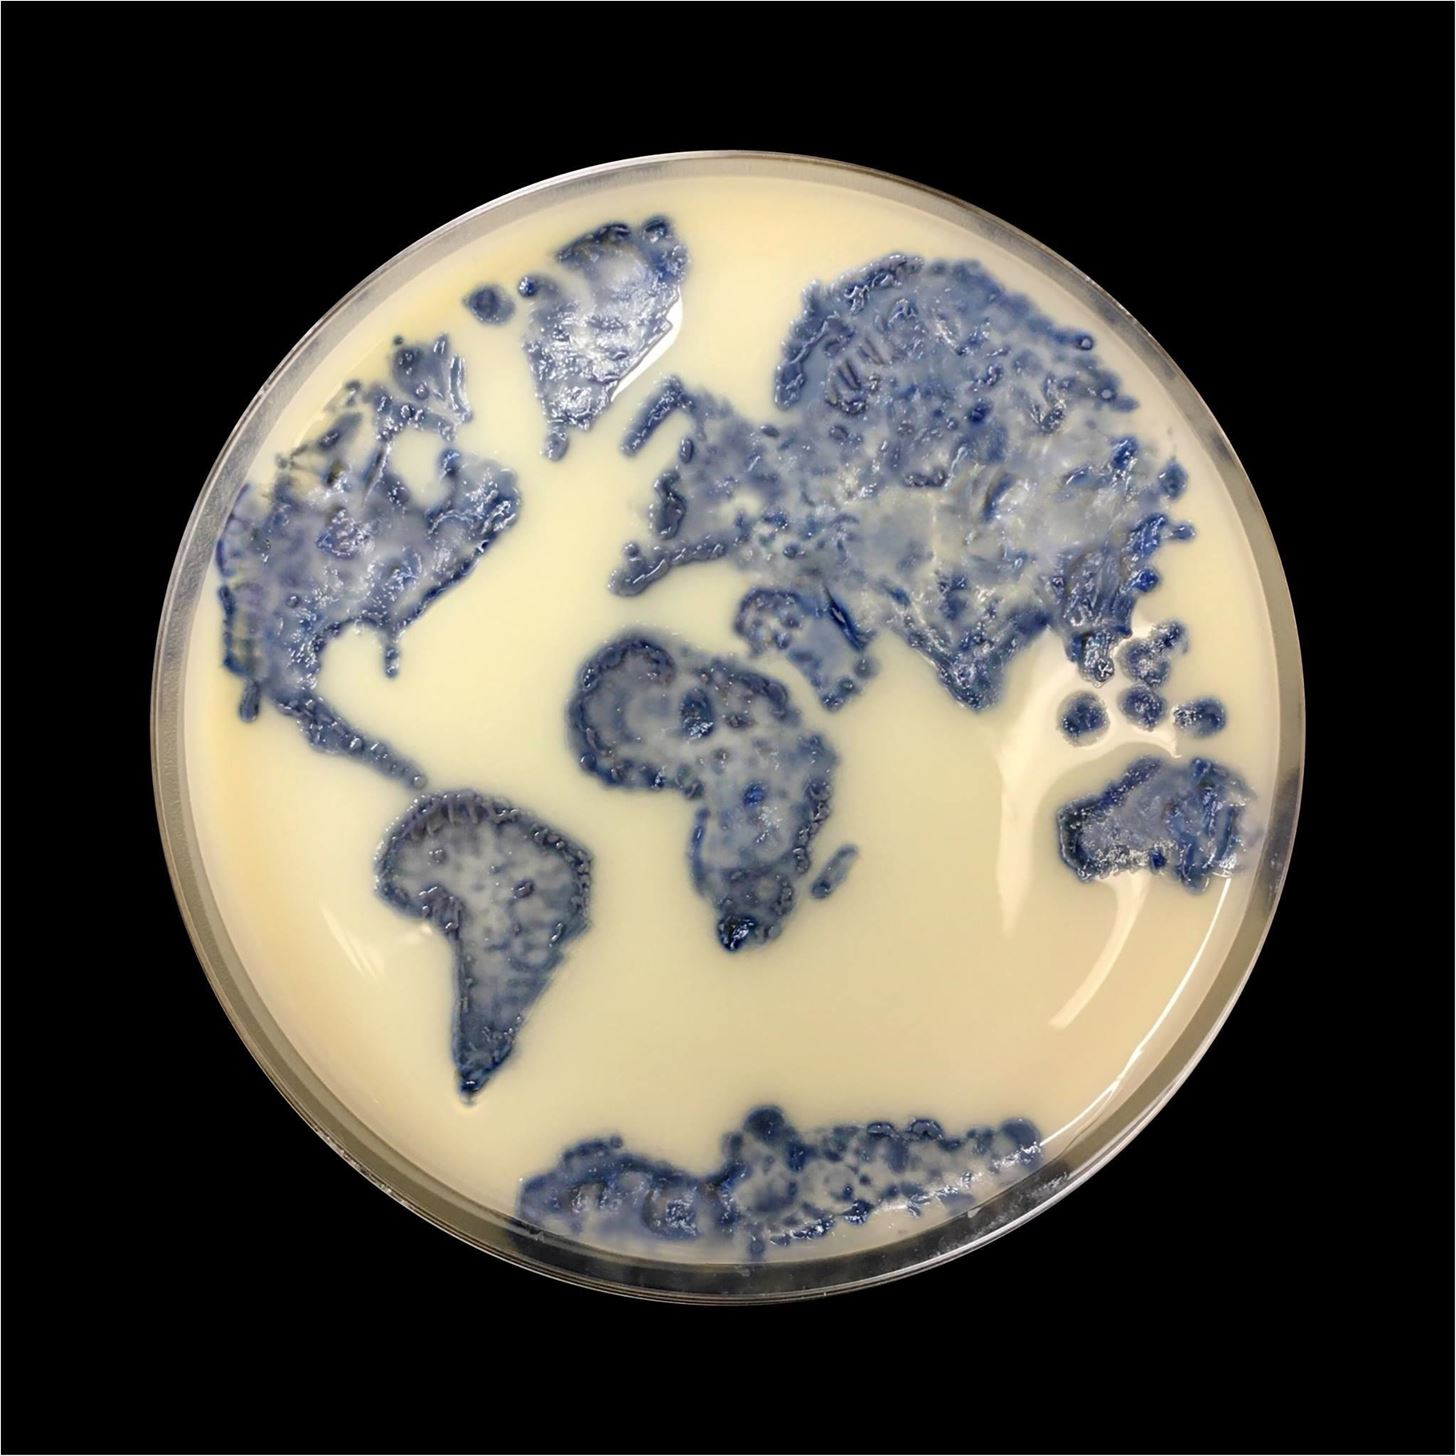 Our 11 Favorite Bacteria Art Submissions from ASM's Petri-Dish Picasso Contest